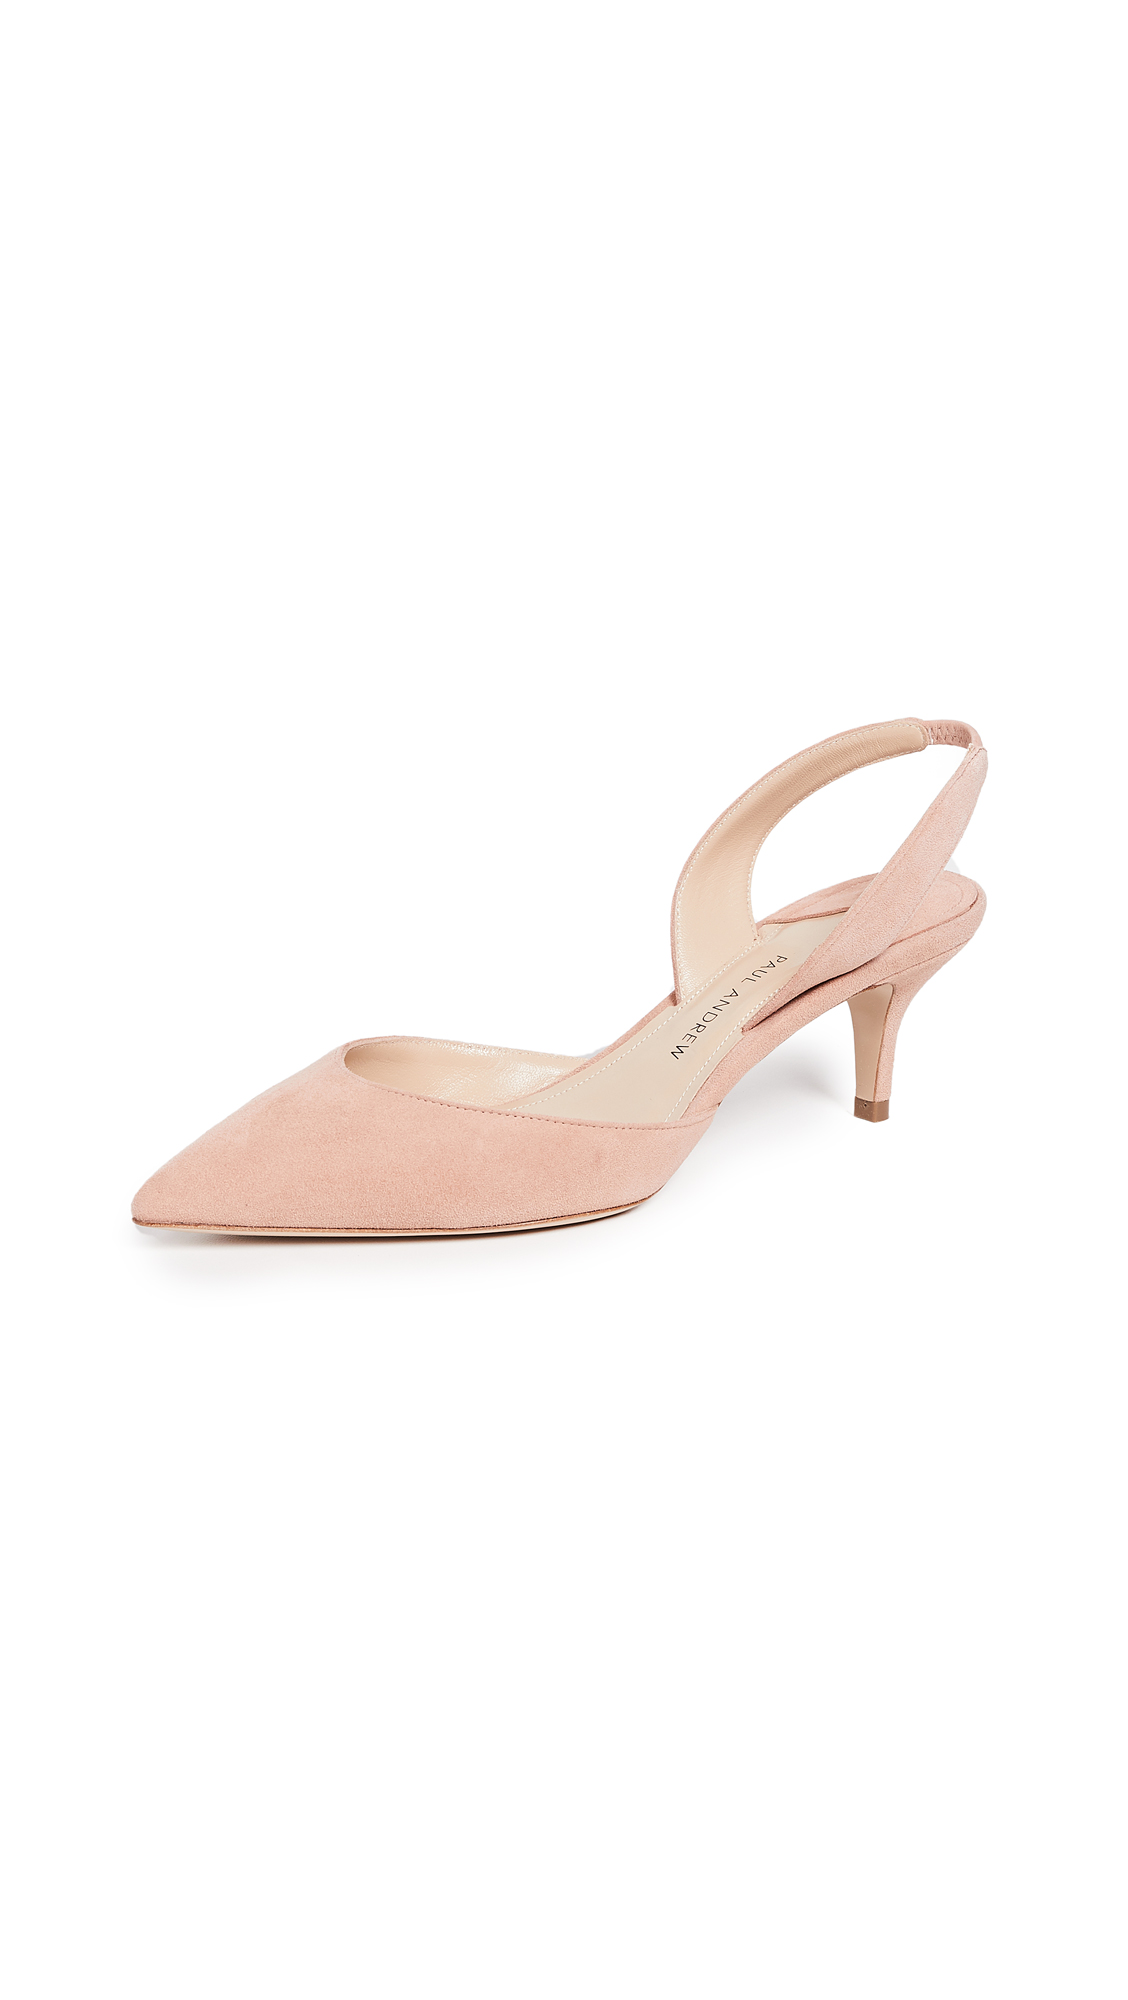 Paul Andrew Rhea 55 Slingback Pumps - Blush